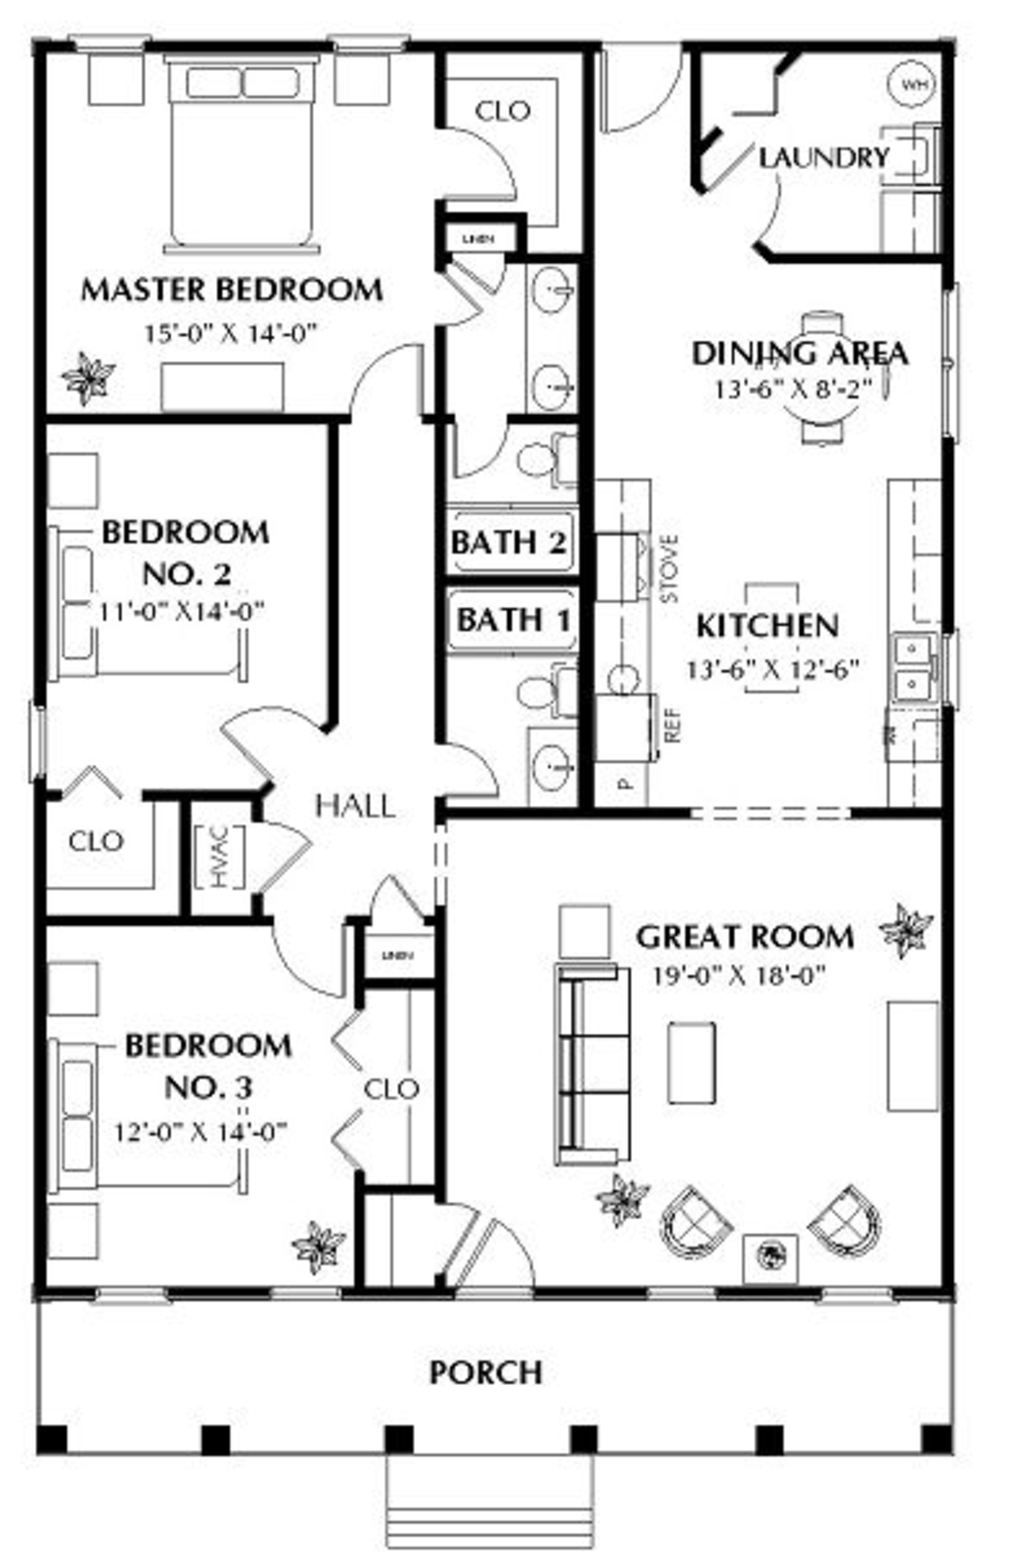 Southern Style House Plan 3 Beds 2 Baths 1587 Sq Ft Plan